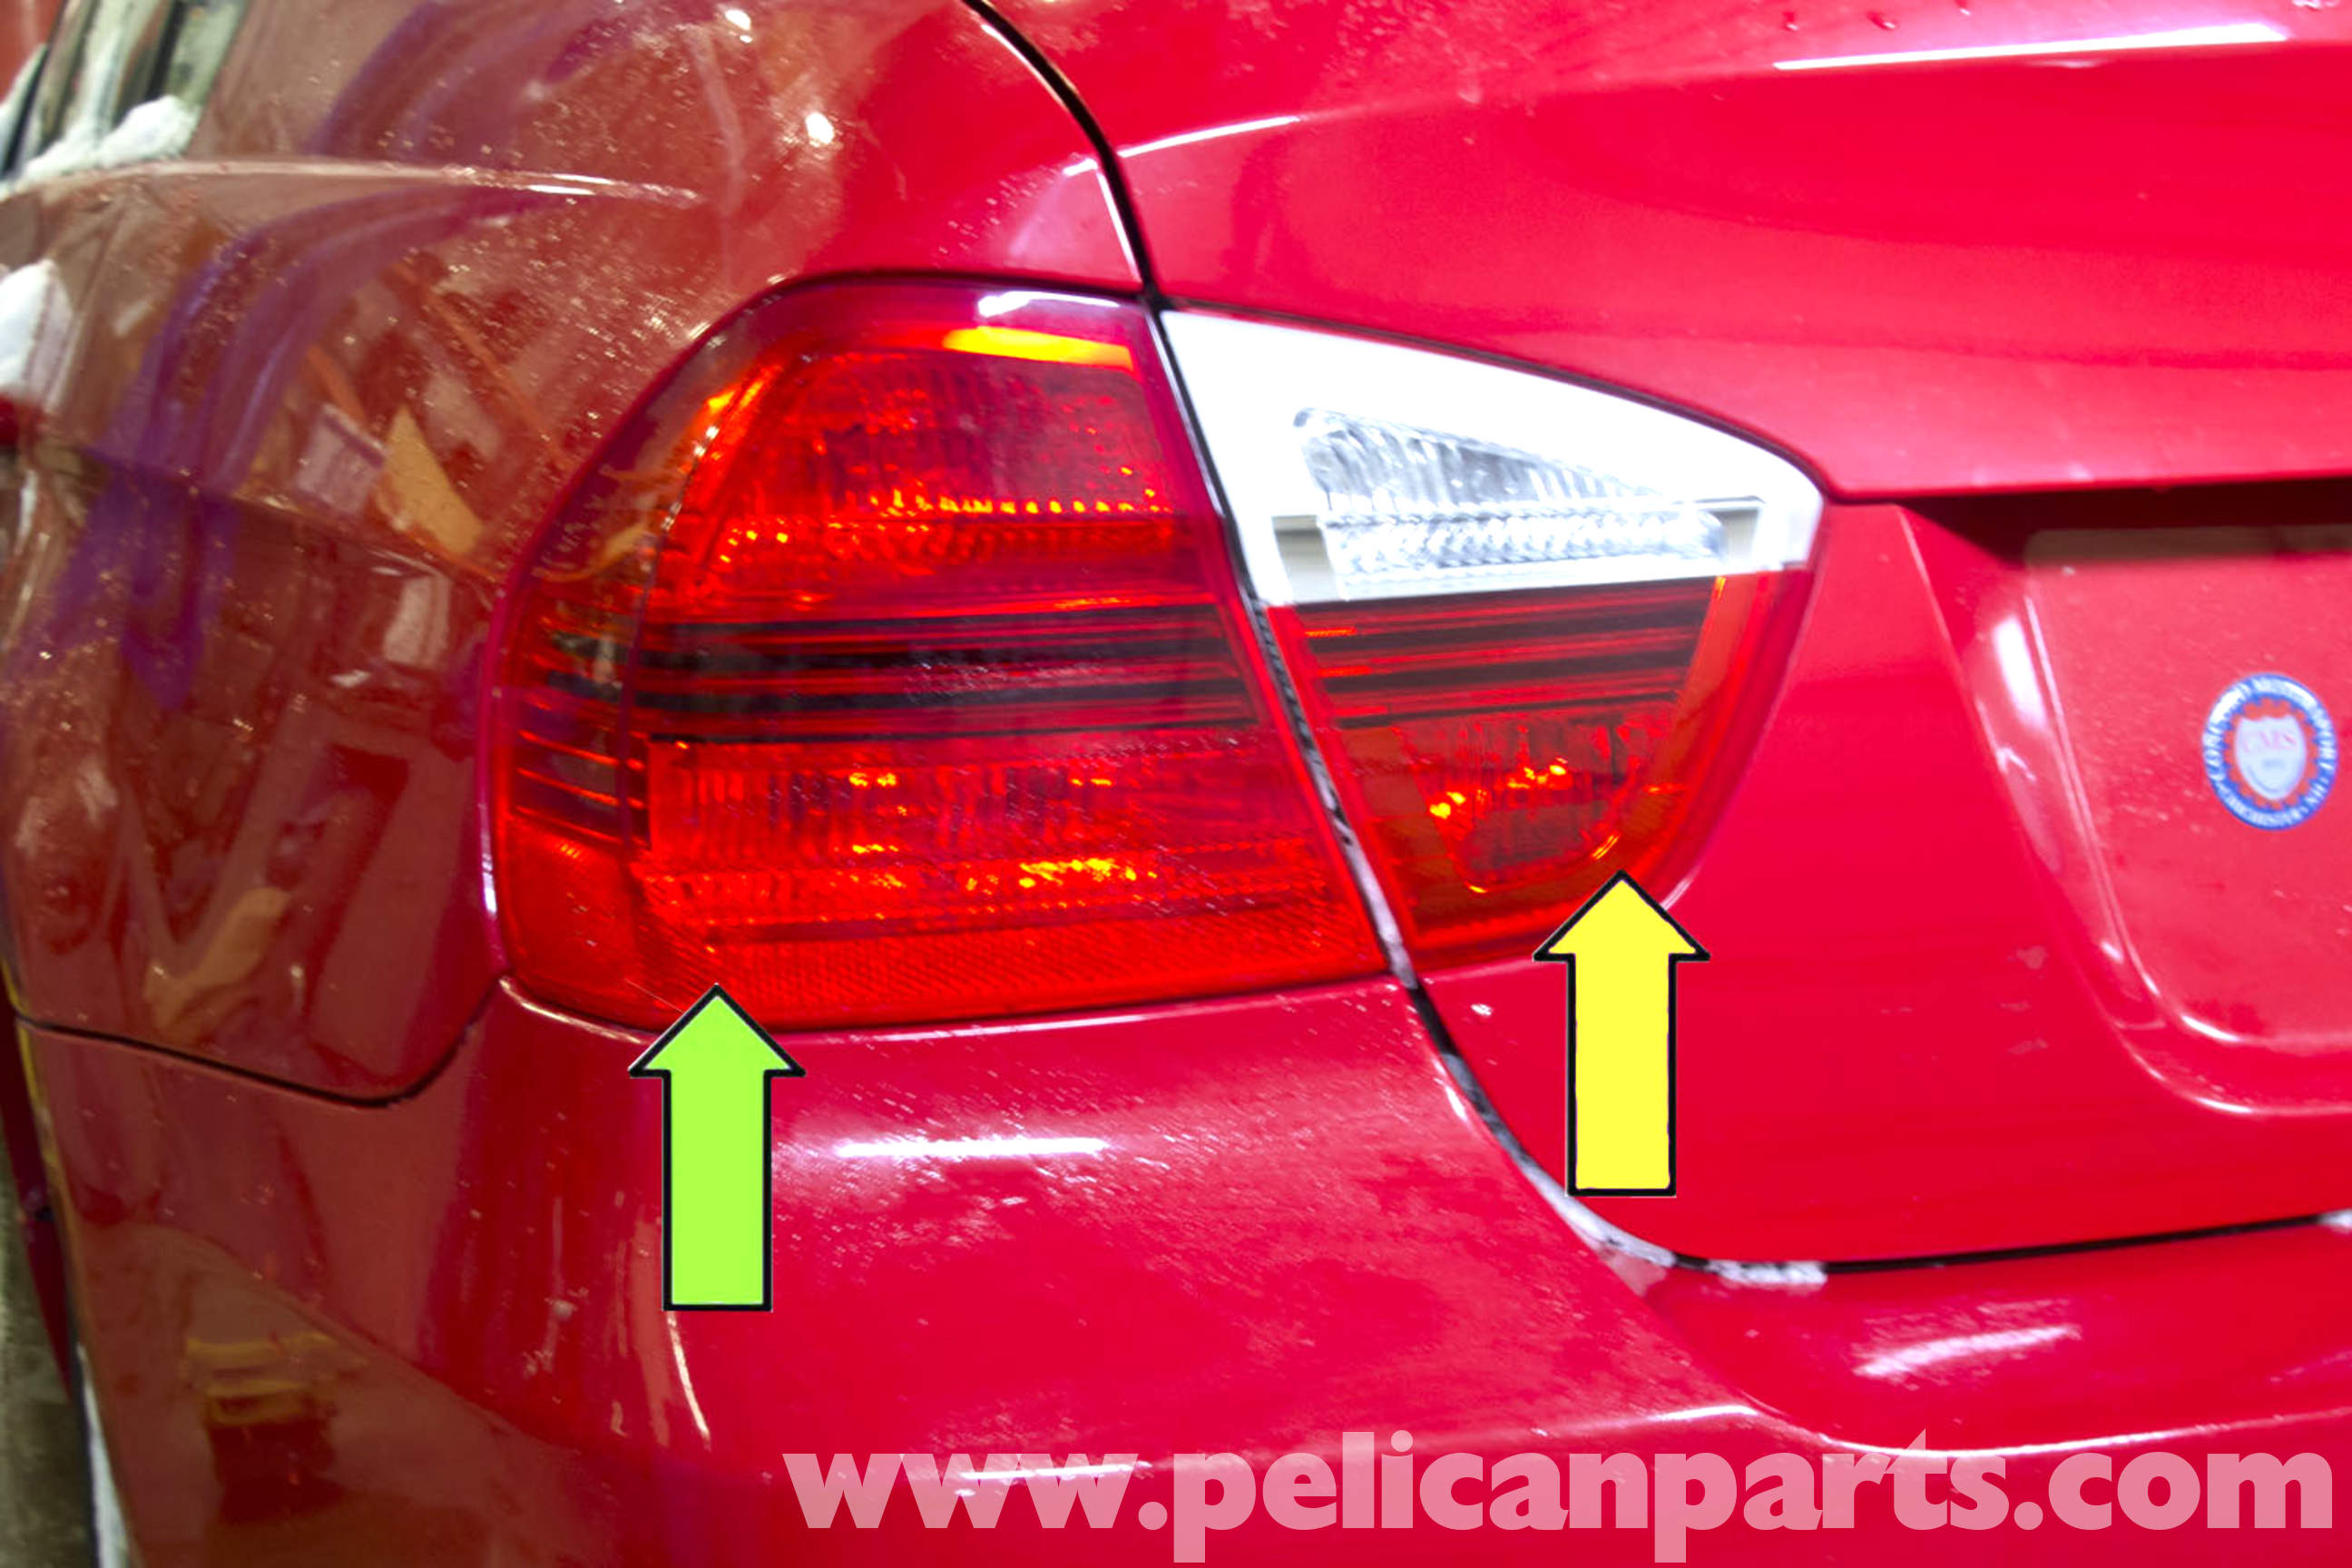 BMW E90 Rear Light Replacement | E91, E92, E93 | Pelican Parts DIY ...